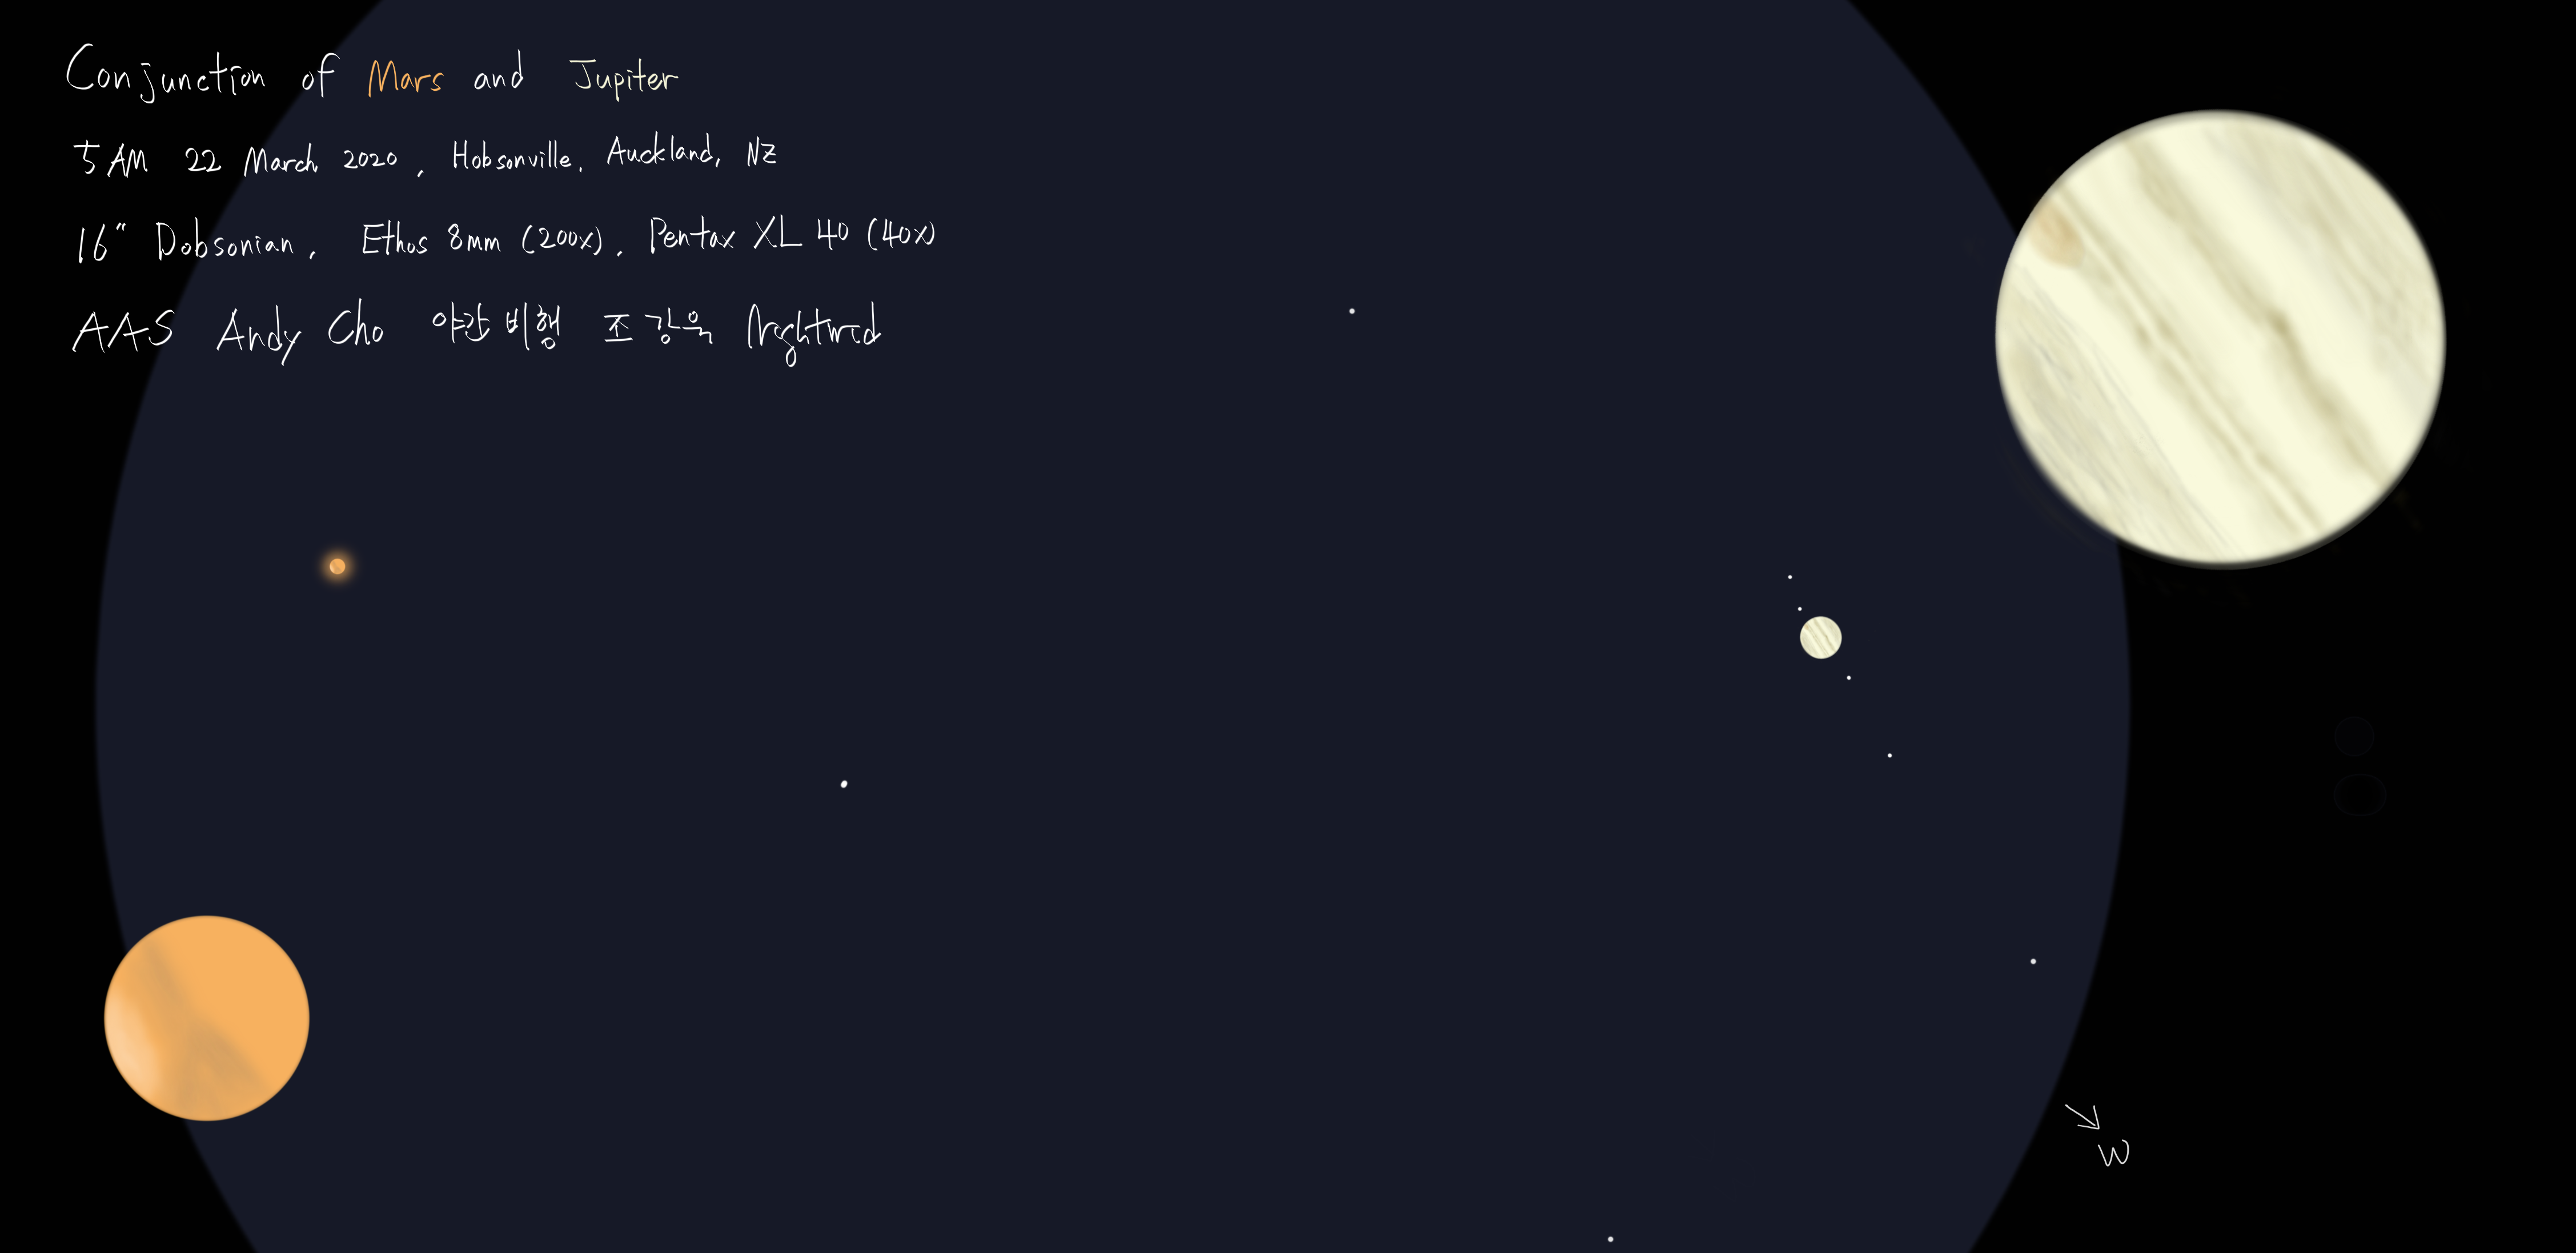 Conjunction of Mars and Jupiter_l 22 March 2020.png